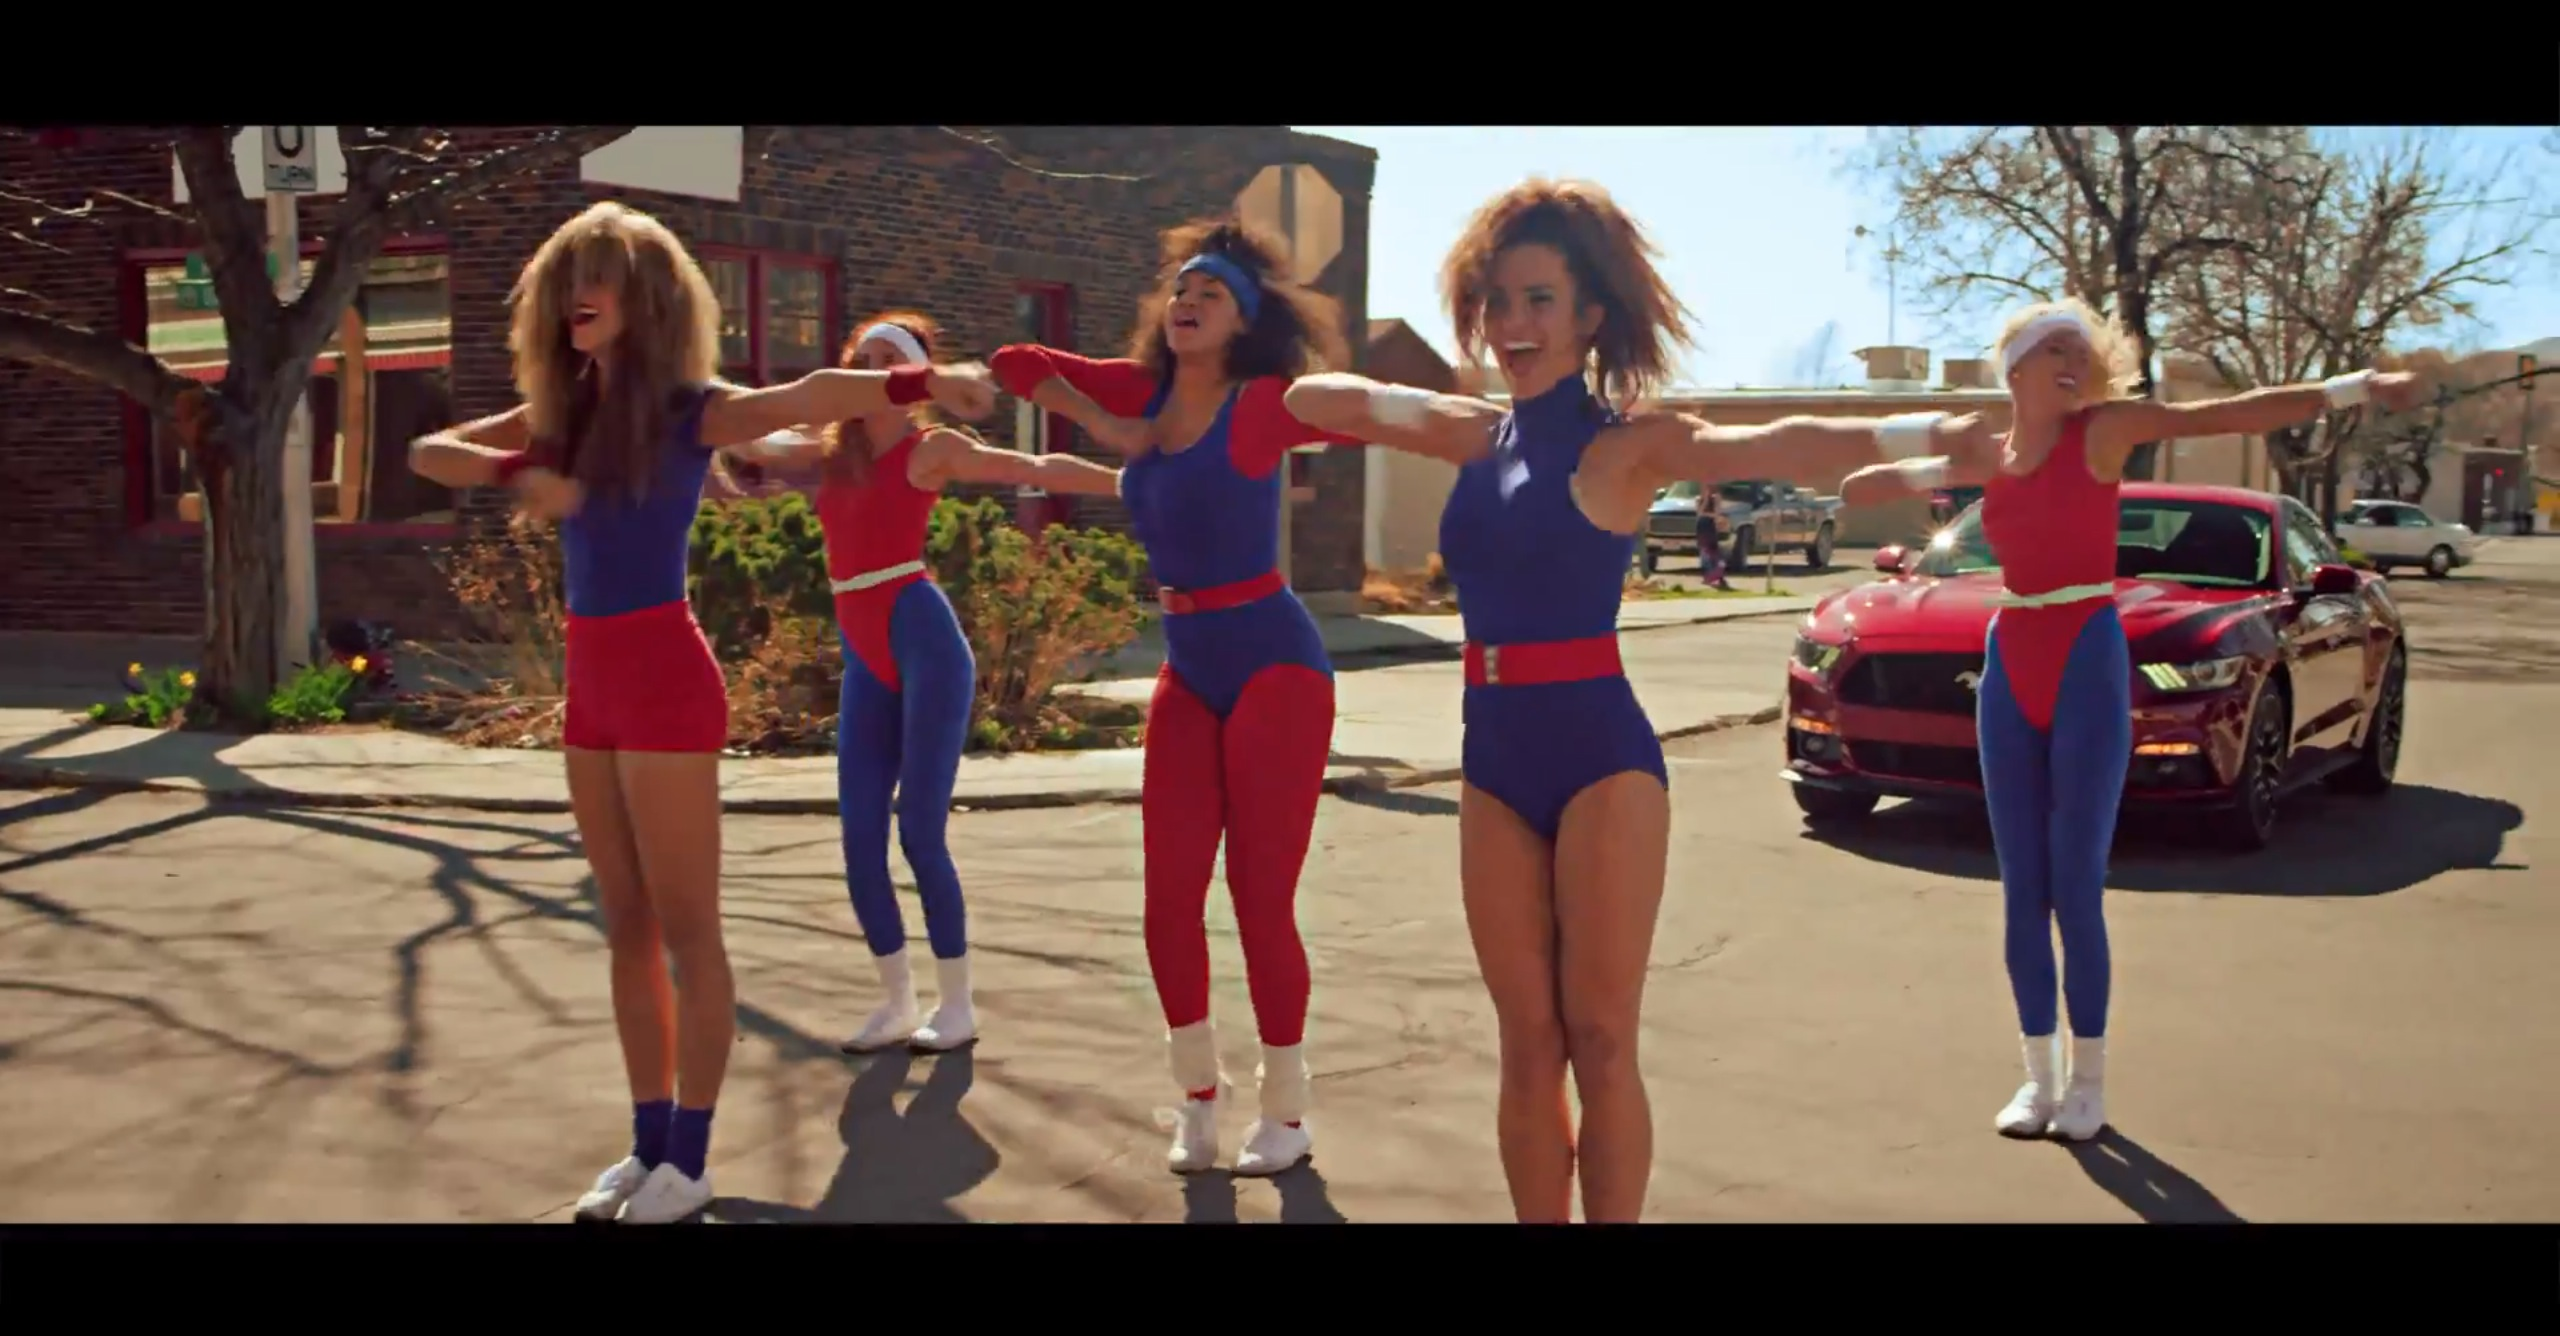 2015 Ford Mustang 80 S Aerobic Dance Battle Ad 2015